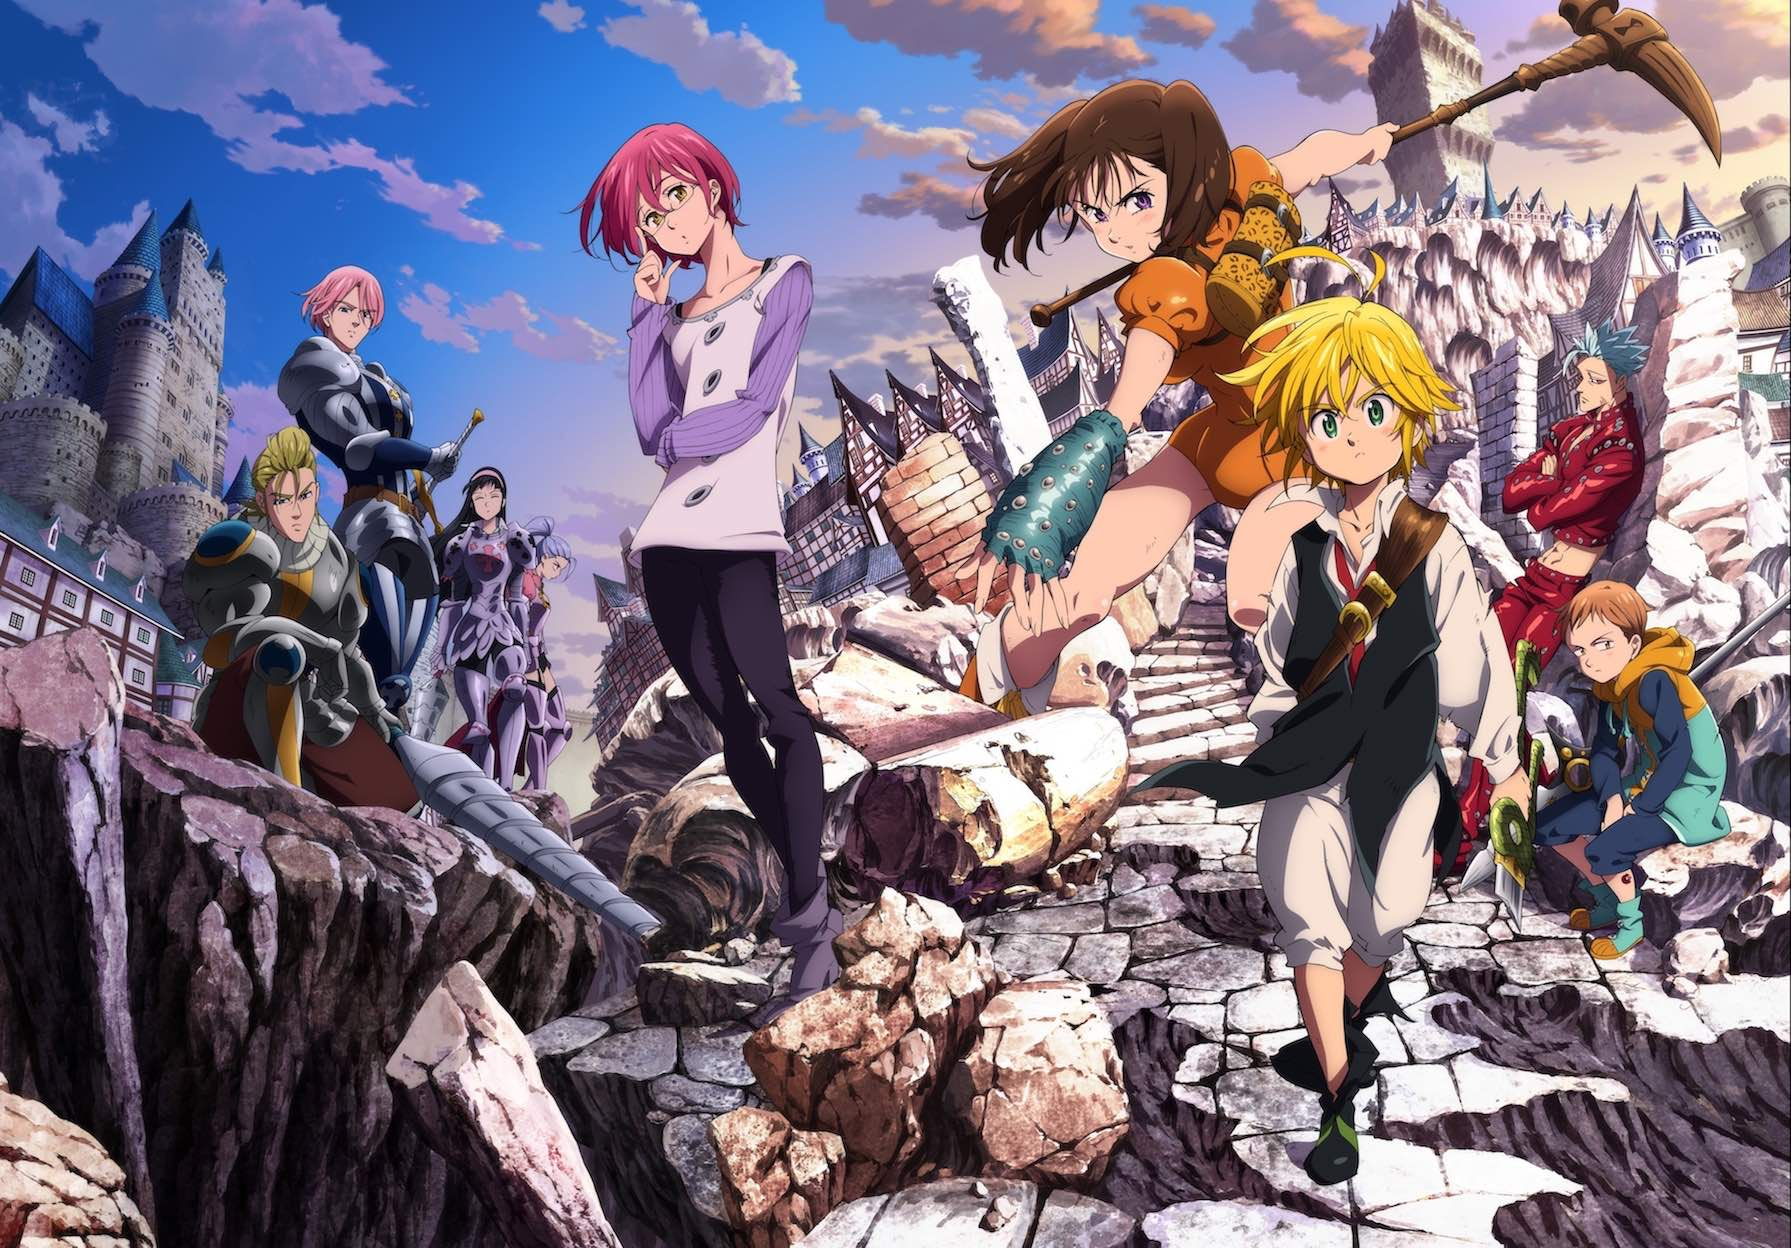 The Seven Deadly Sins are here to save Midgard with Crystal of Re:union x The Seven Deadly Sins Collaboration